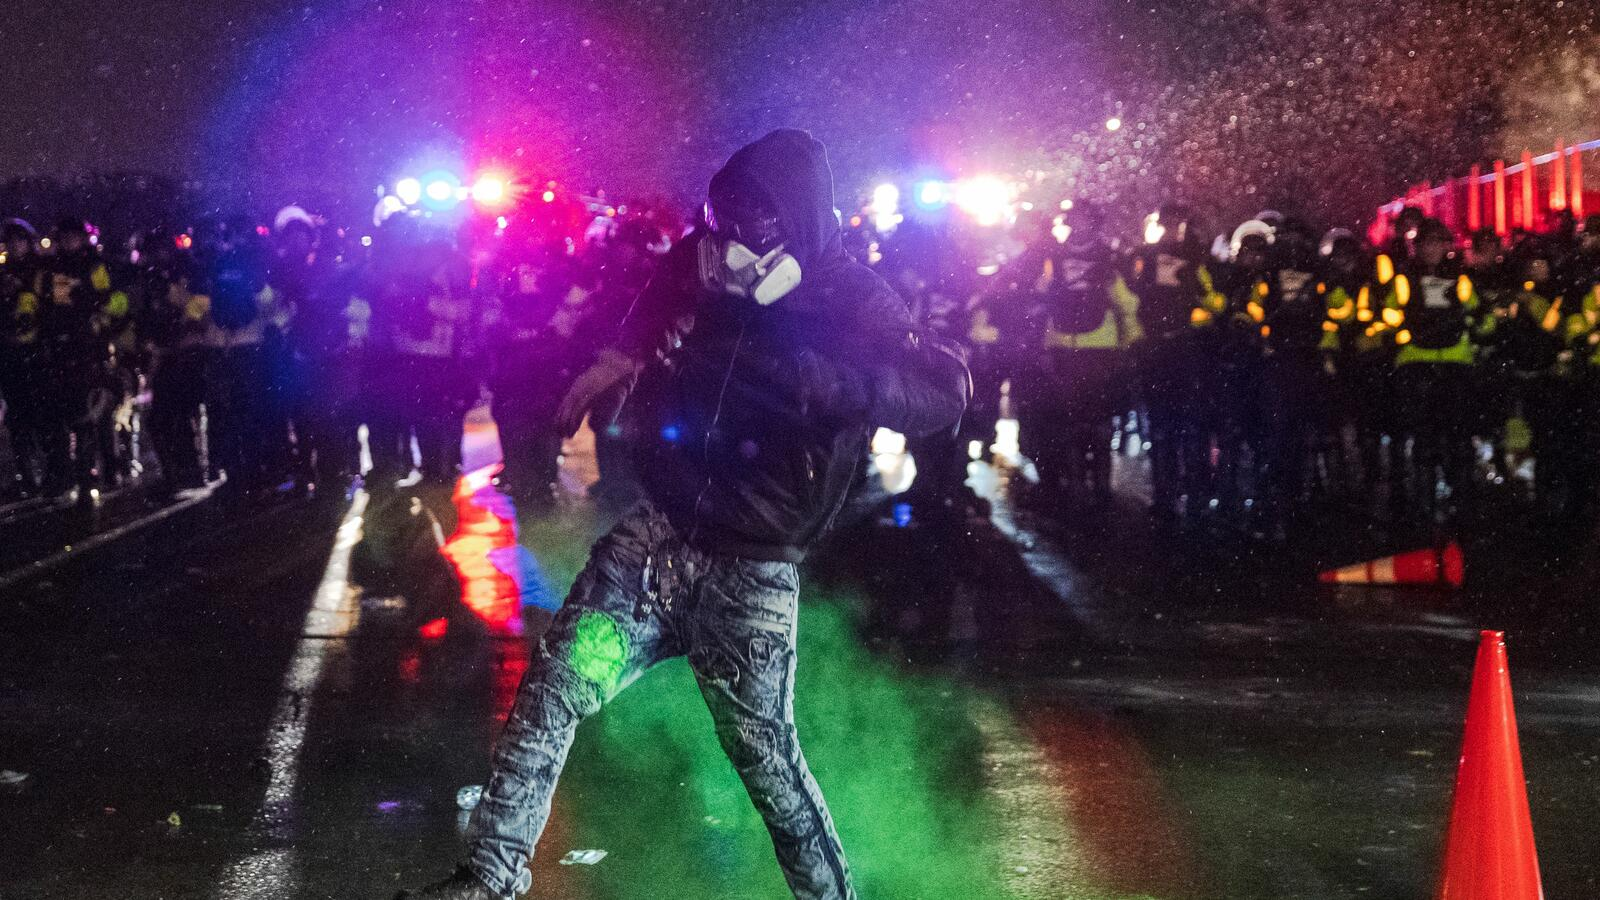 60 Arrested In Minnesota Police Shooting Protests